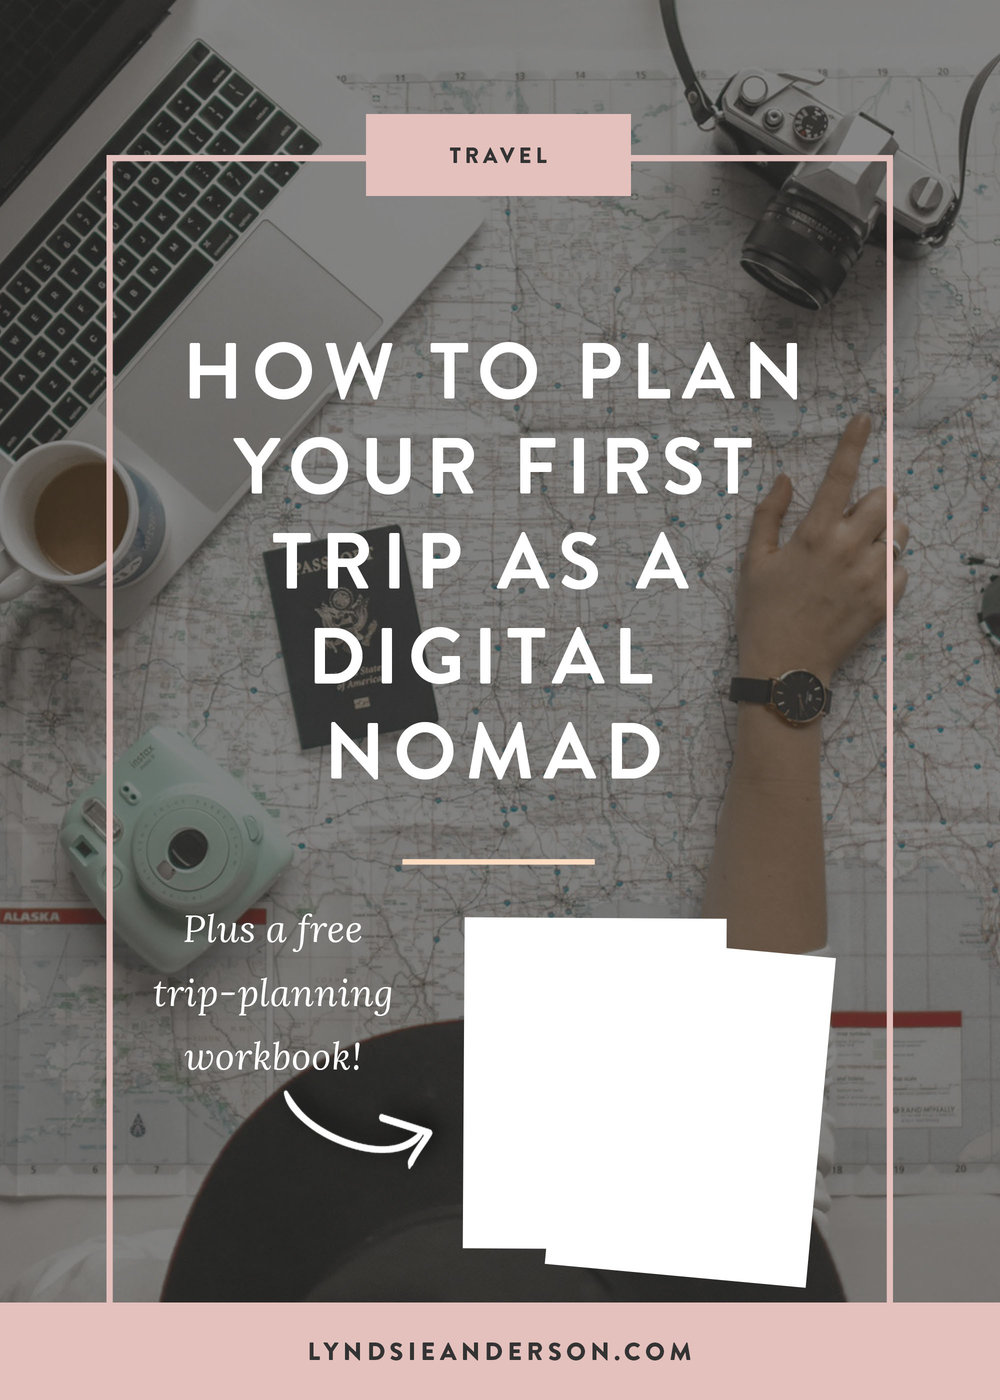 how-to-plan-your-first-trip-as-a-digital-nomad.jpg